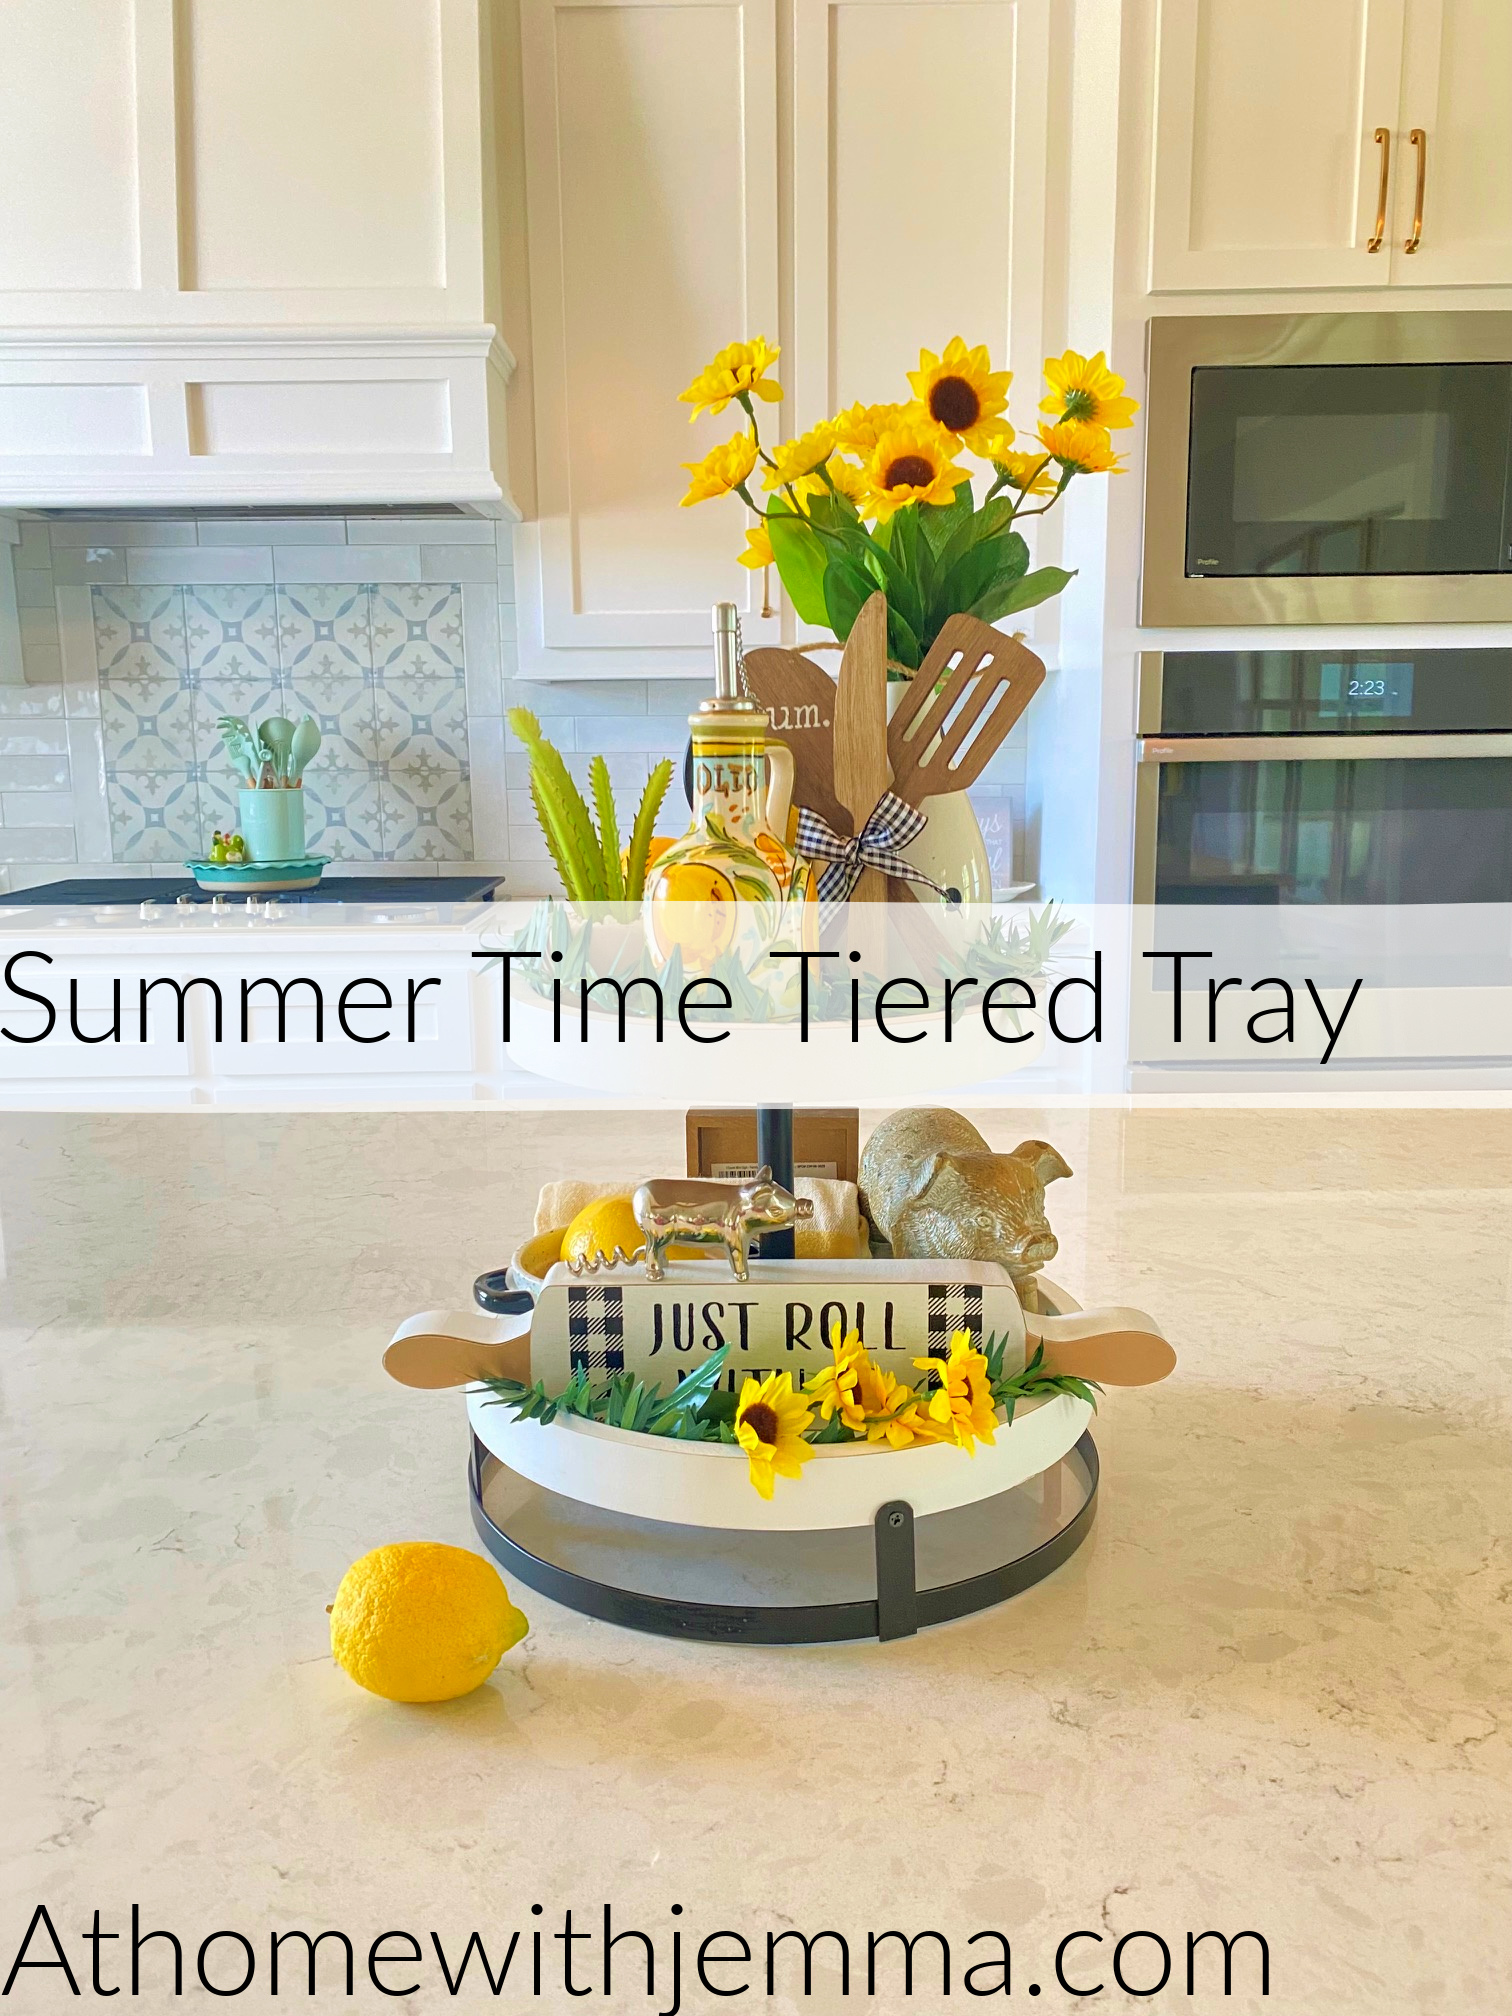 Homemaking With Jemma Summertime Tiered Tray